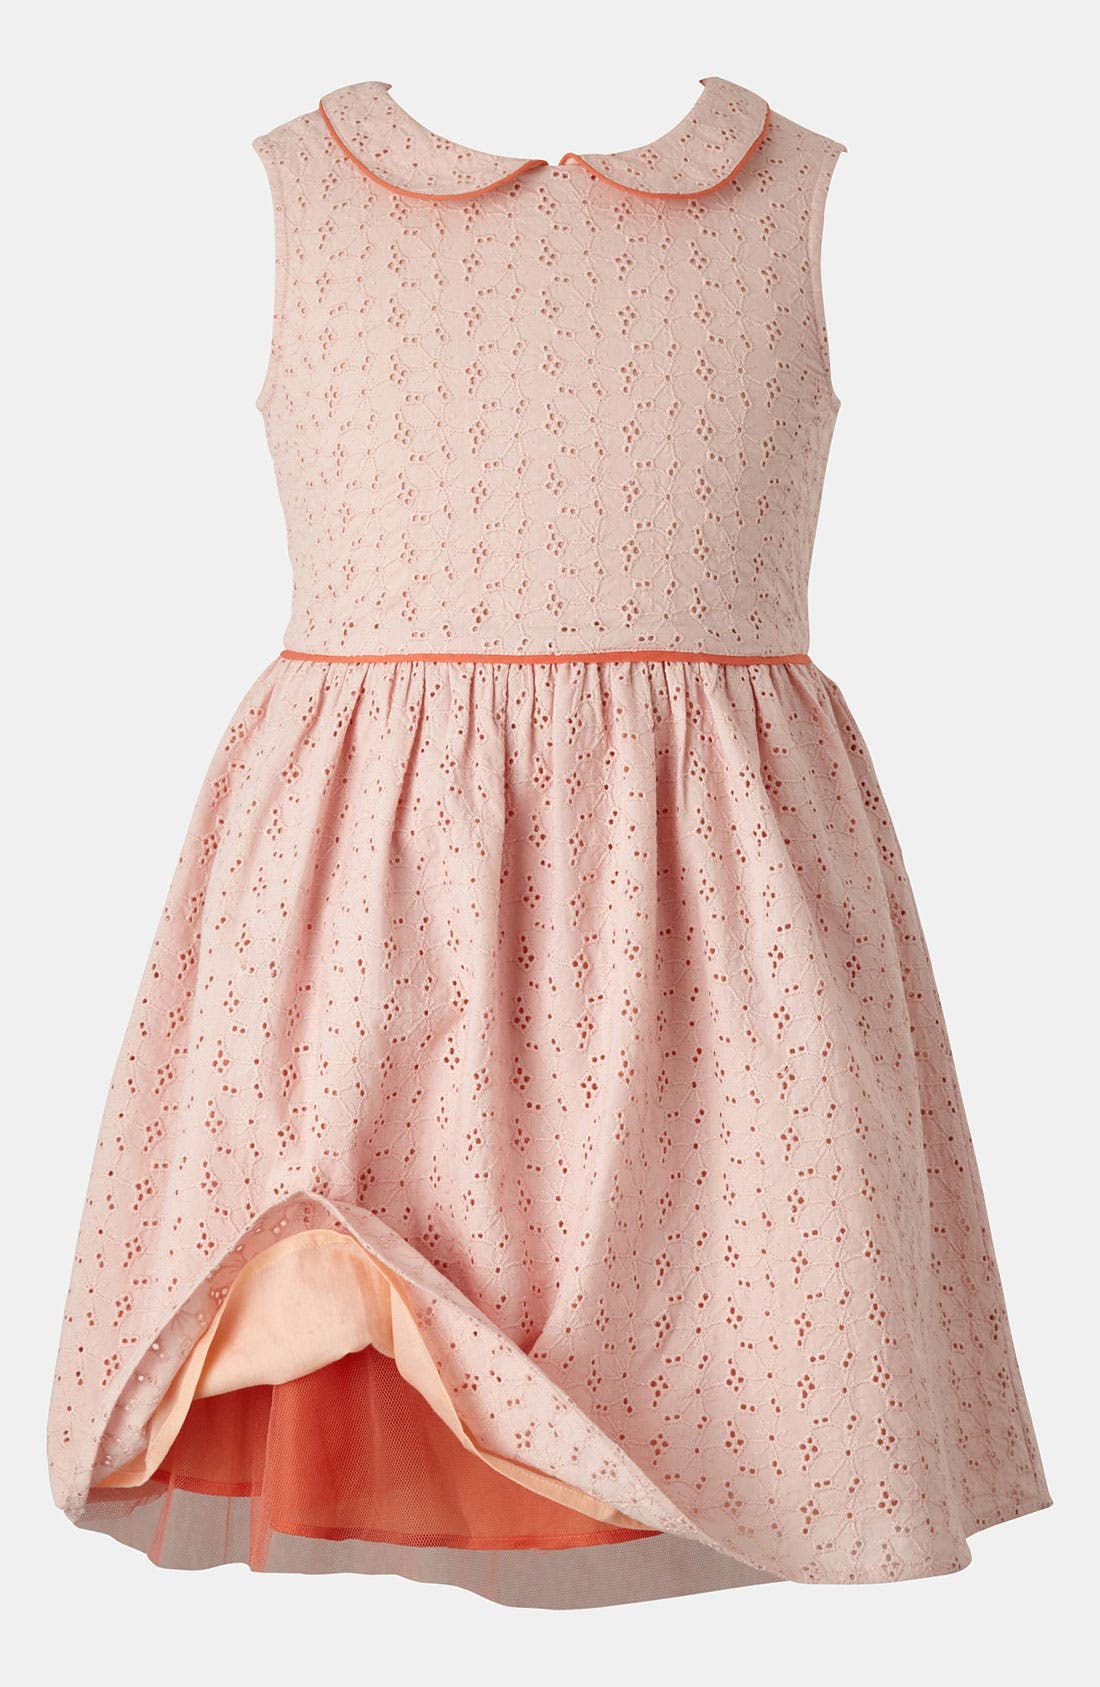 Alternate Image 1 Selected - Mini Boden Eyelet Dress (Little Girls & Big Girls)